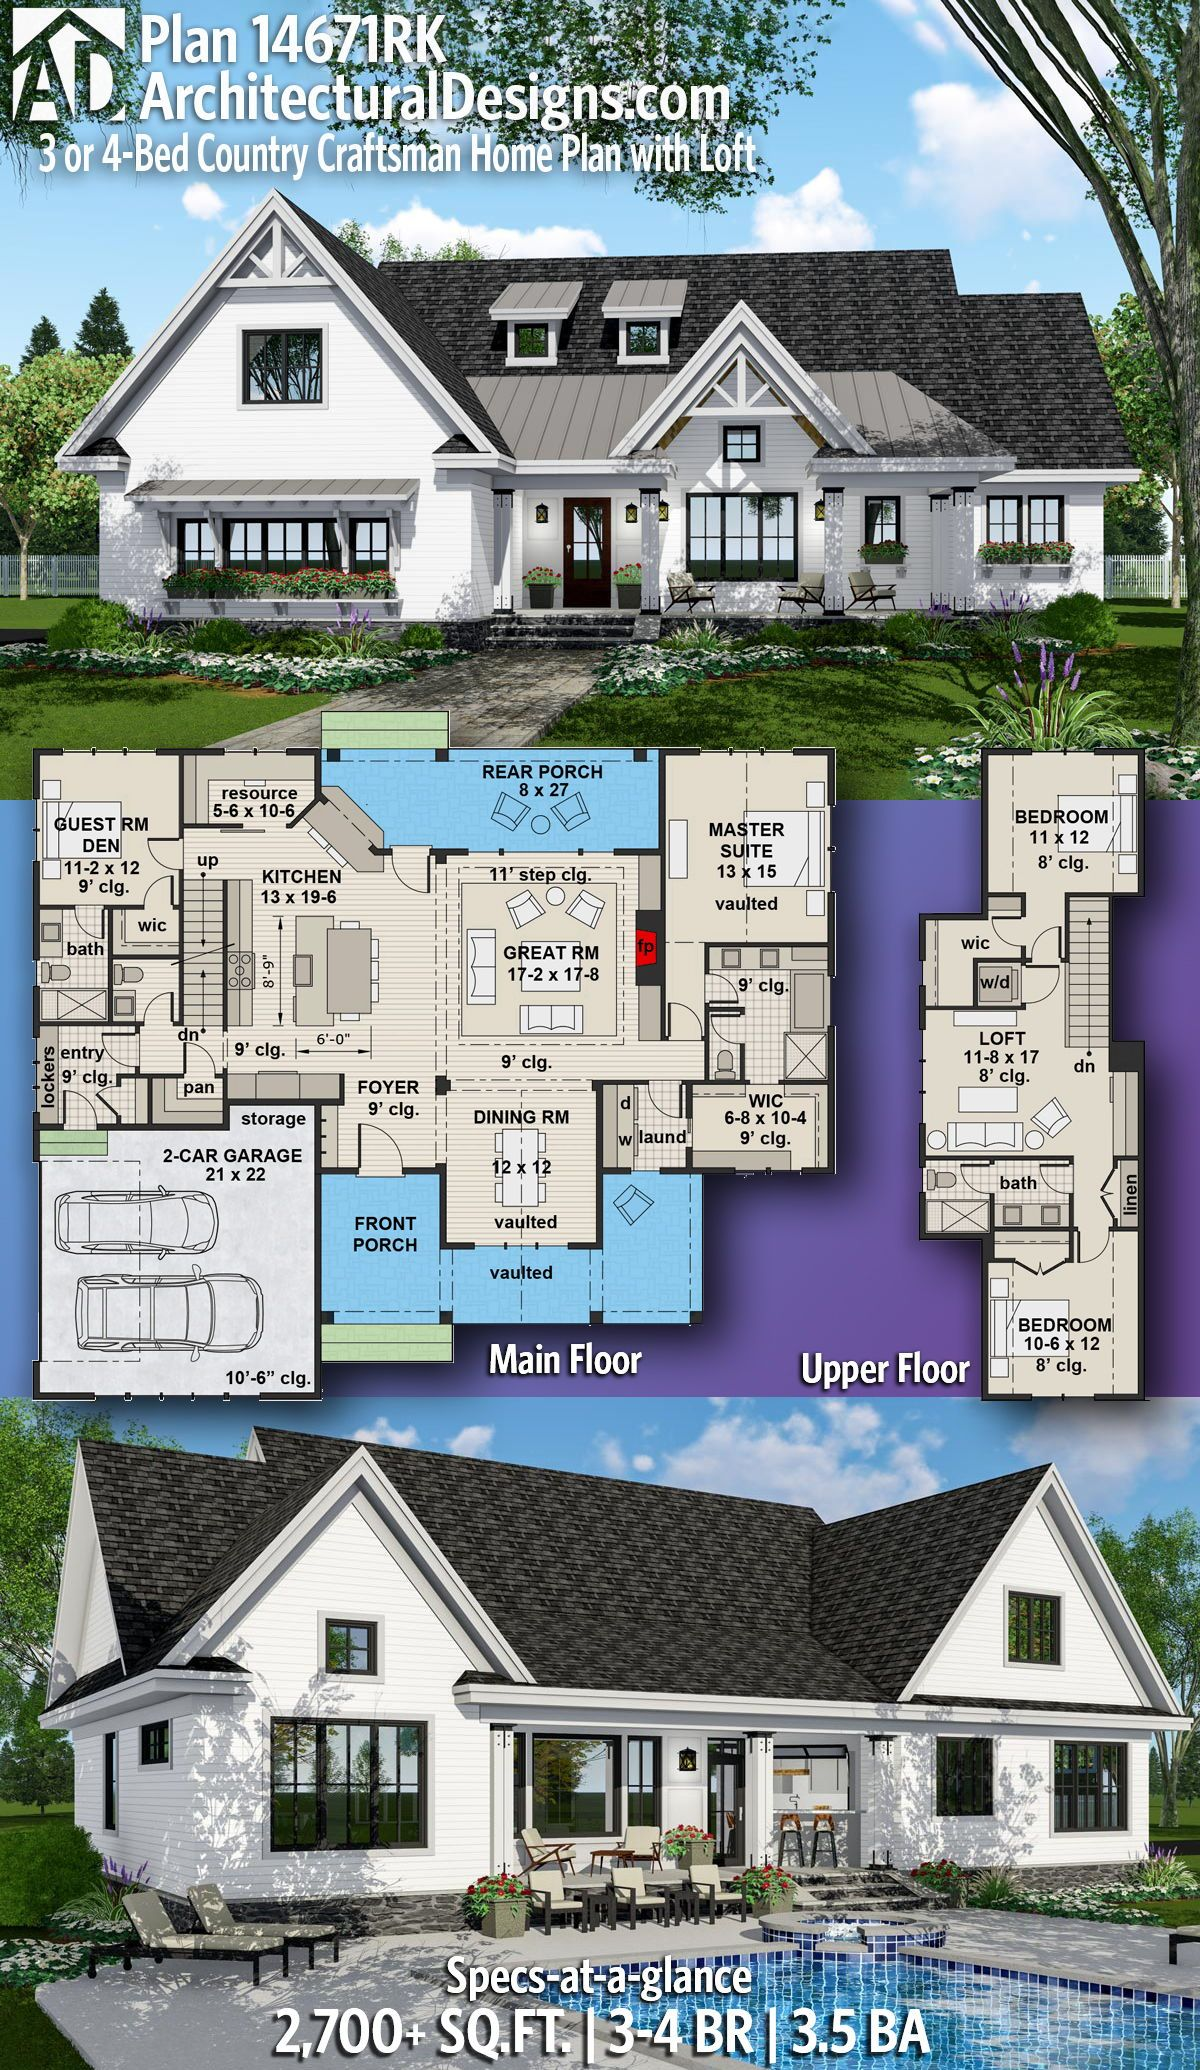 Plan 14671rk 3 Or 4 Bed Country Craftsman Home Plan With Loft Craftsman House Plans House Plans Farmhouse New House Plans